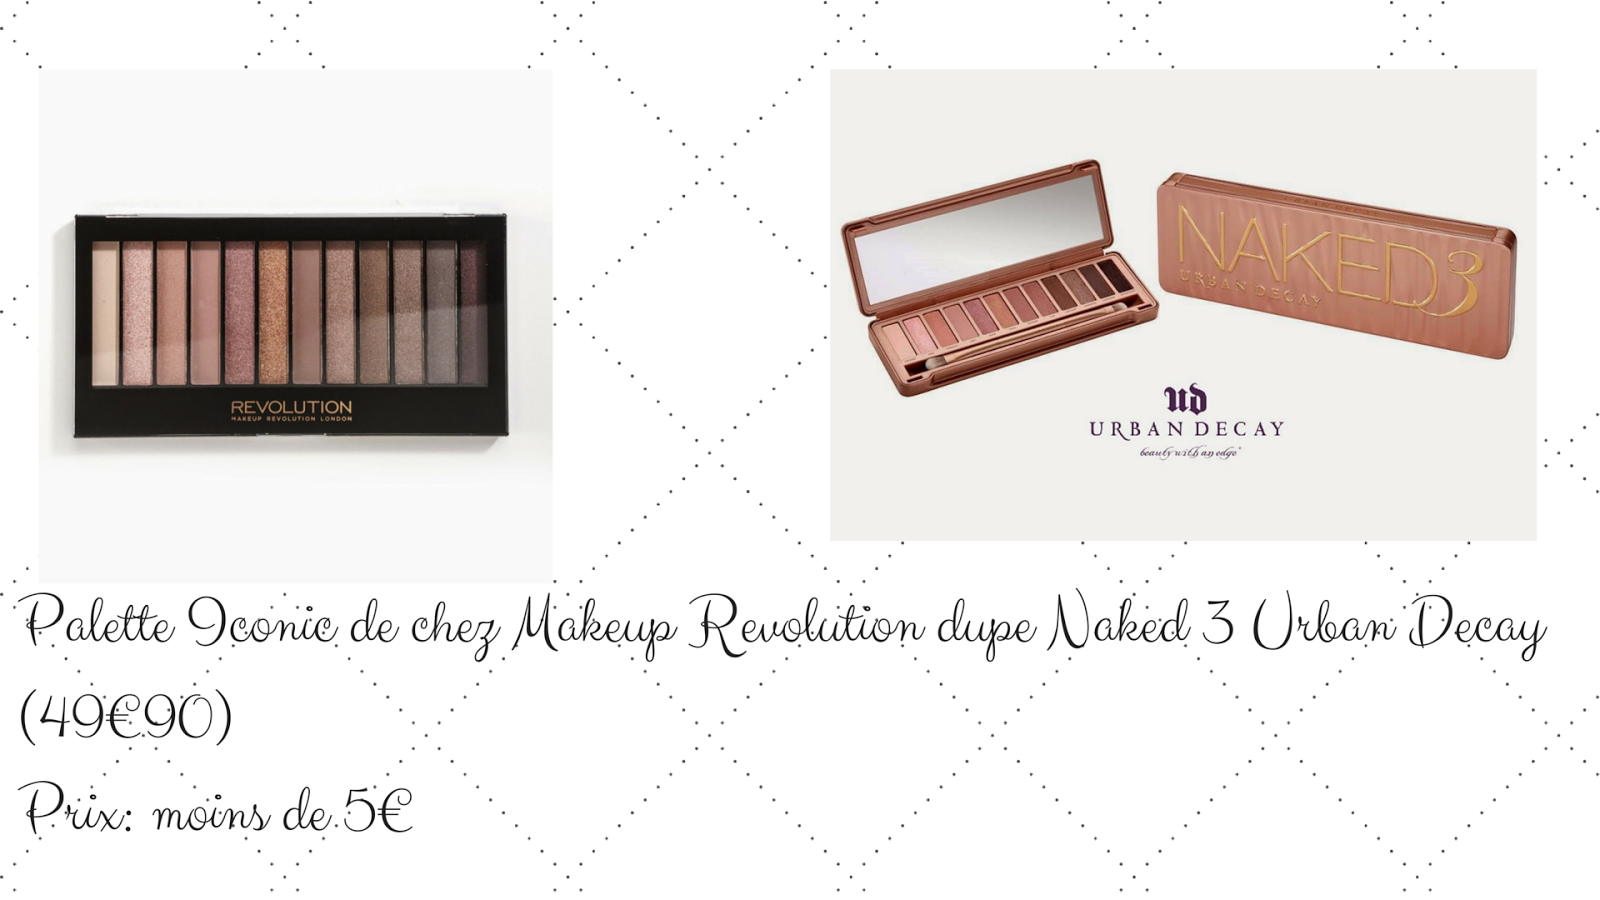 http://www.makeuprevolutionstore.com/index.php/palettes/redemption-12-shades/redemption-palette-iconic-3.html